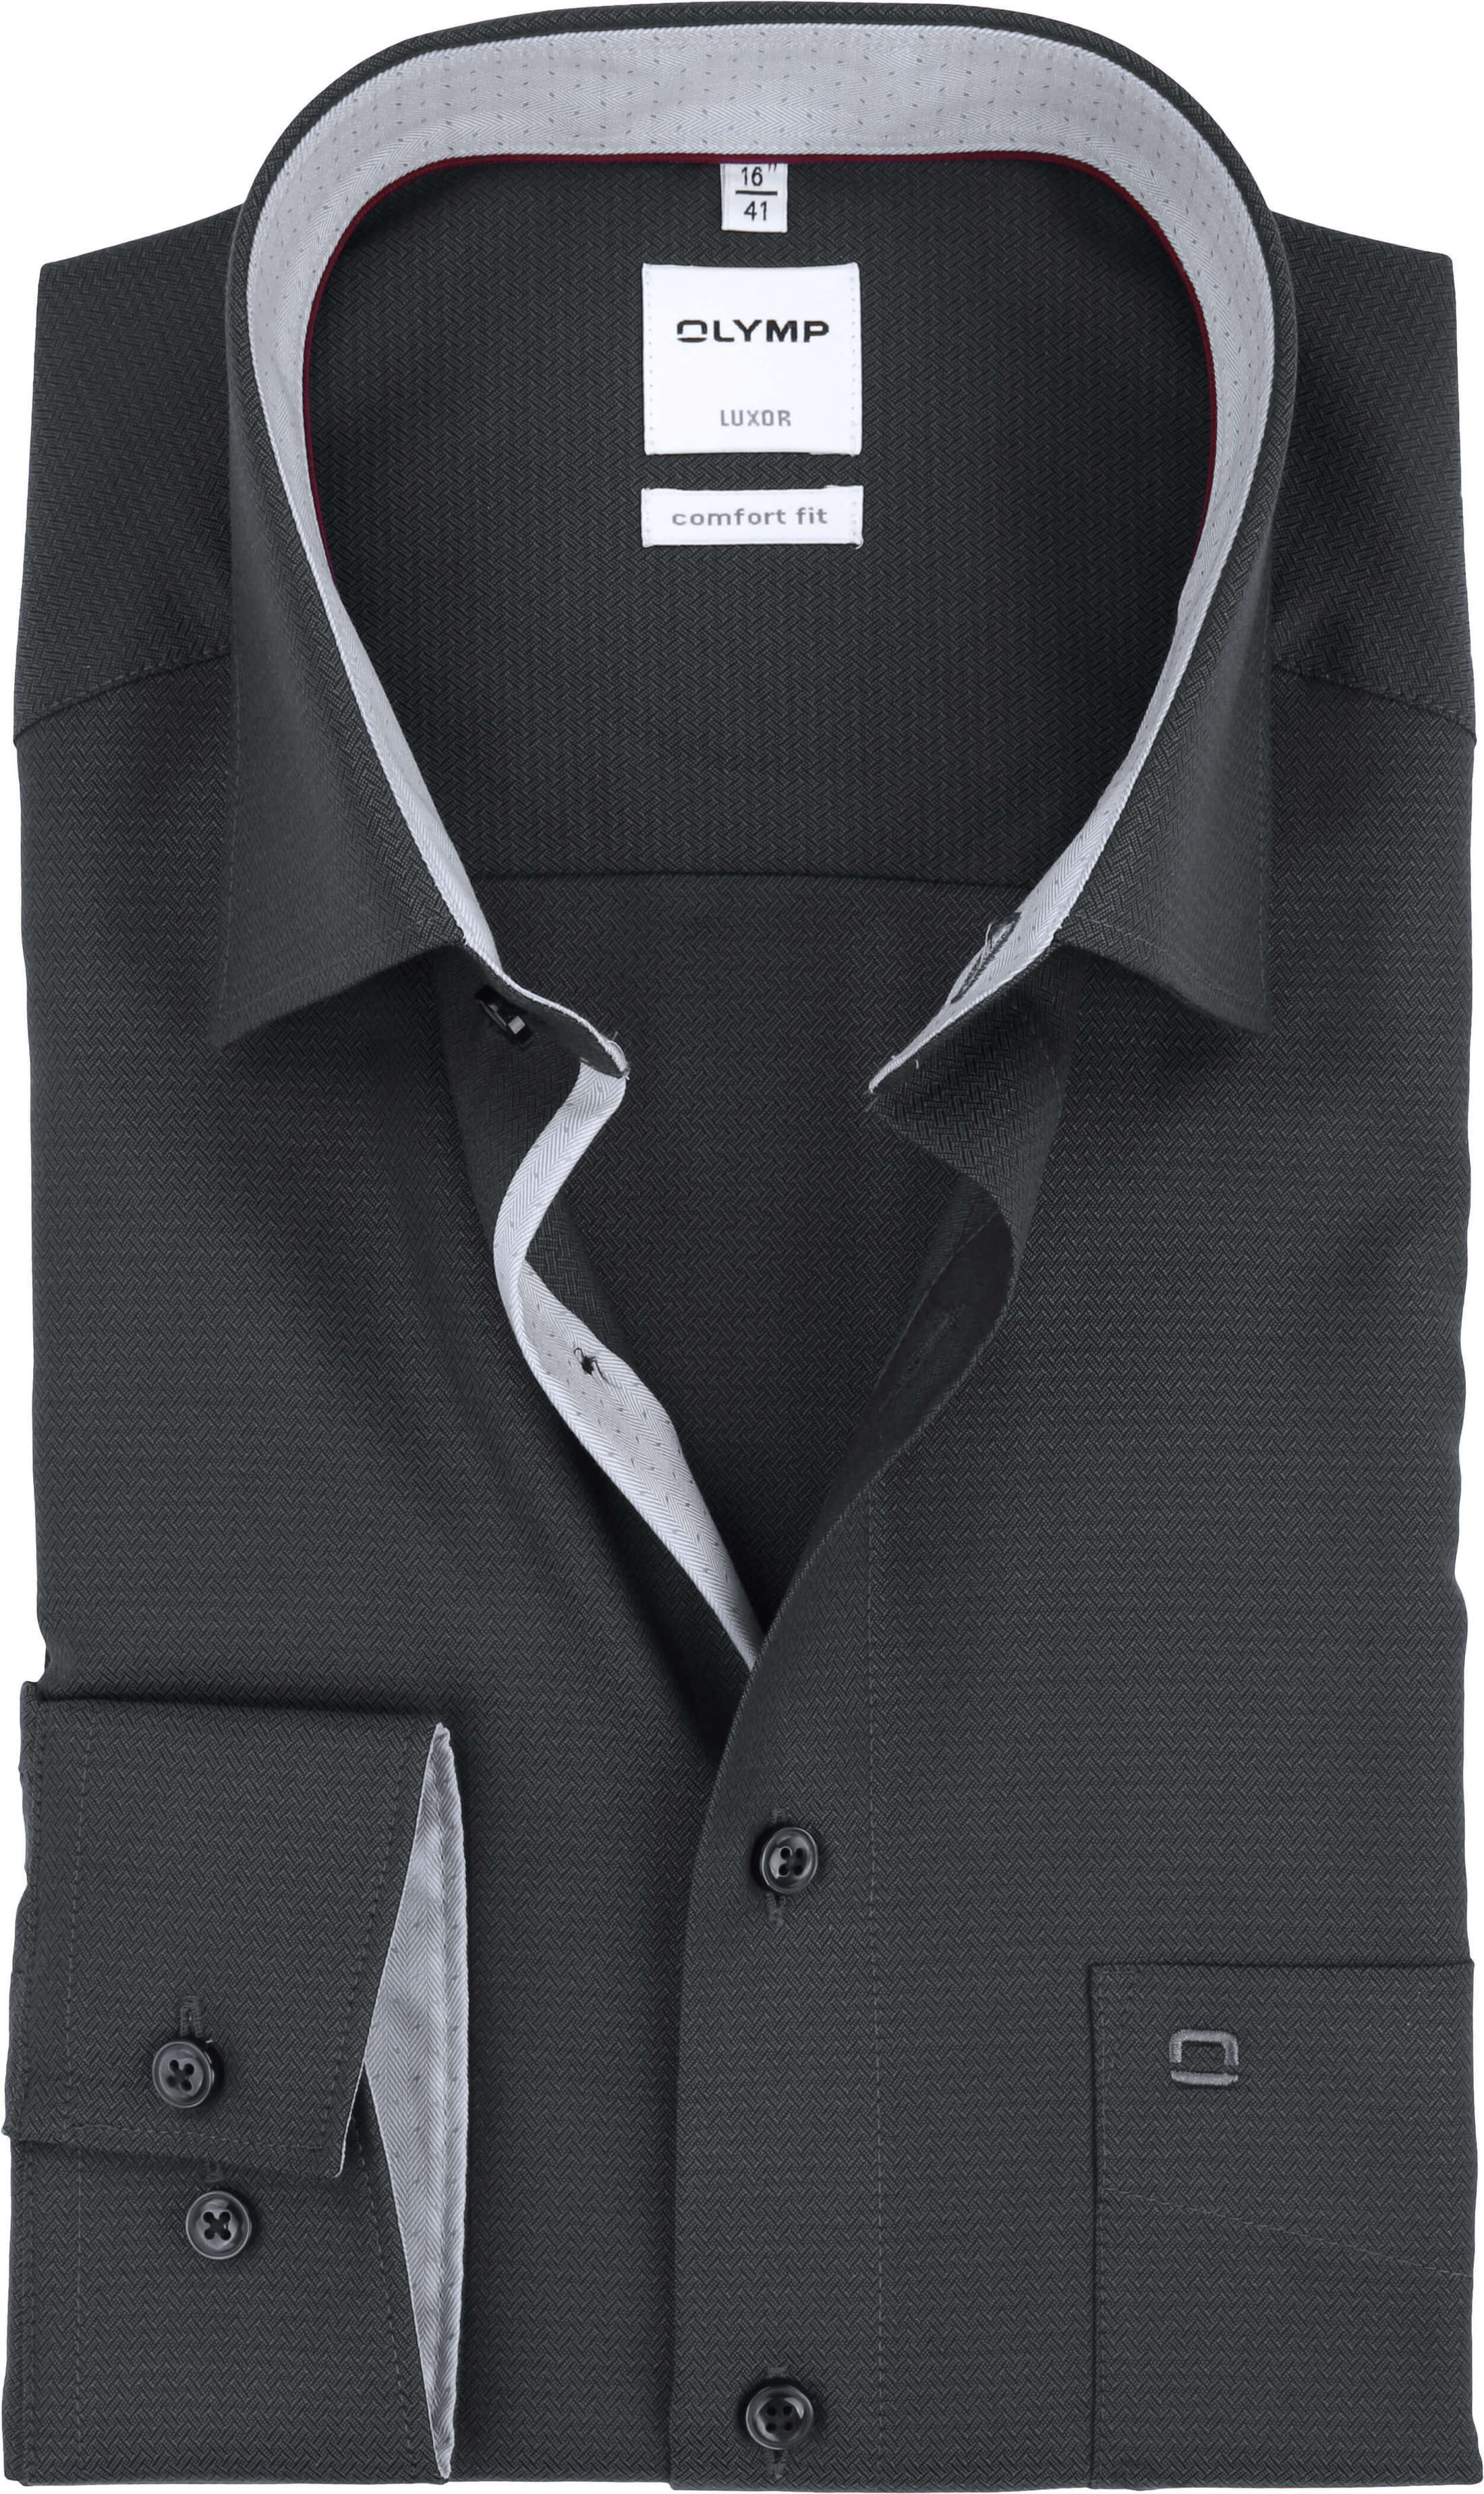 official site retail prices website for discount Olymp Luxor Shirt Dark Grey Comfort Fit